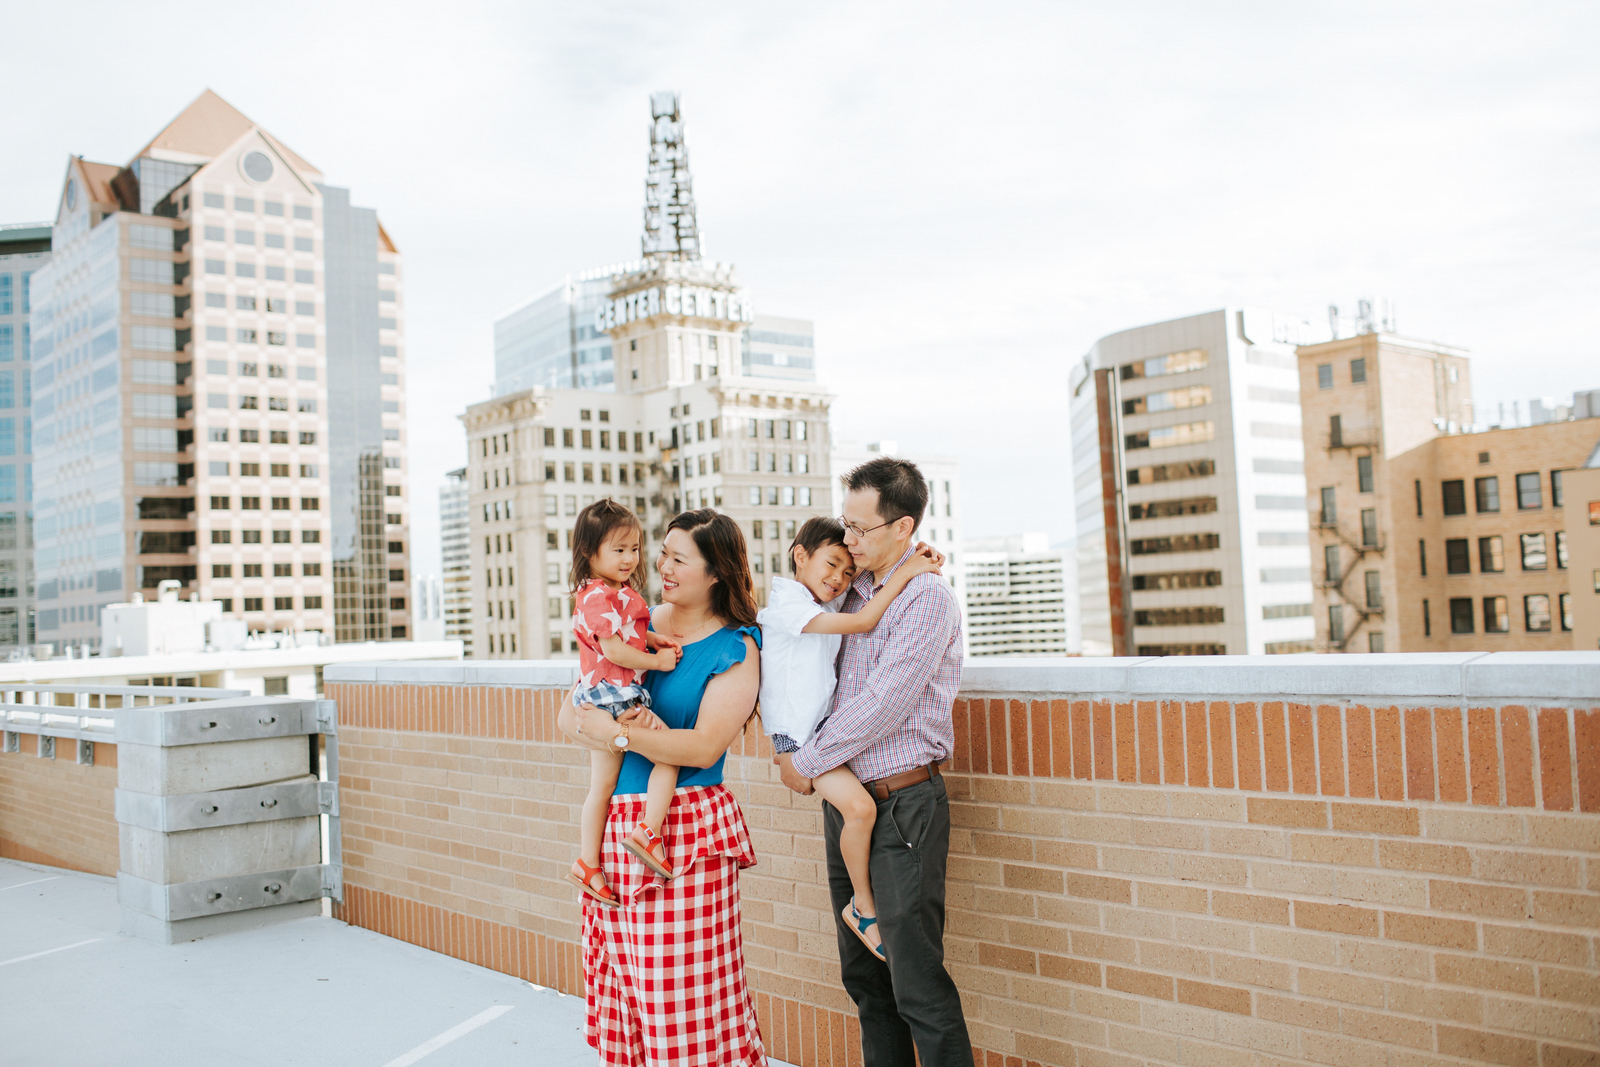 Happy 4th of July! - Red, White, and Blue Patriotic Outfits for the Whole Family by Utah fashion blogger Sandy A La Mode